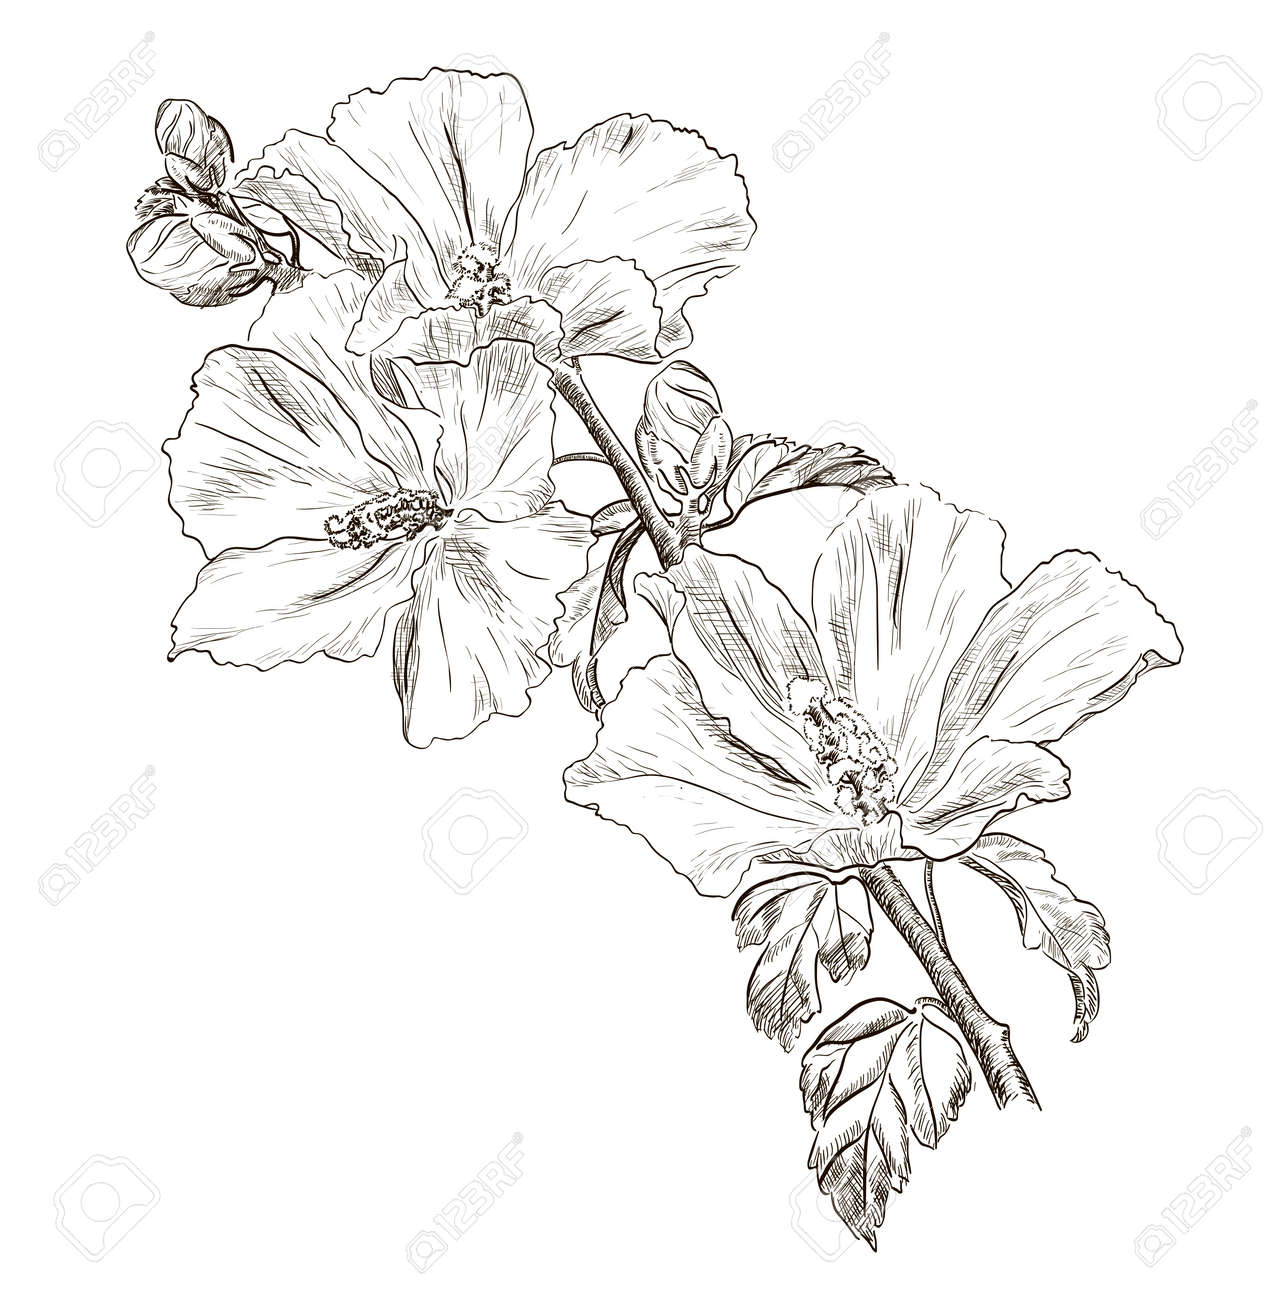 How to draw hibiscus flowers step by step hibiscus flower drawing hand drawing hibiscus flower stock vector izmirmasajfo